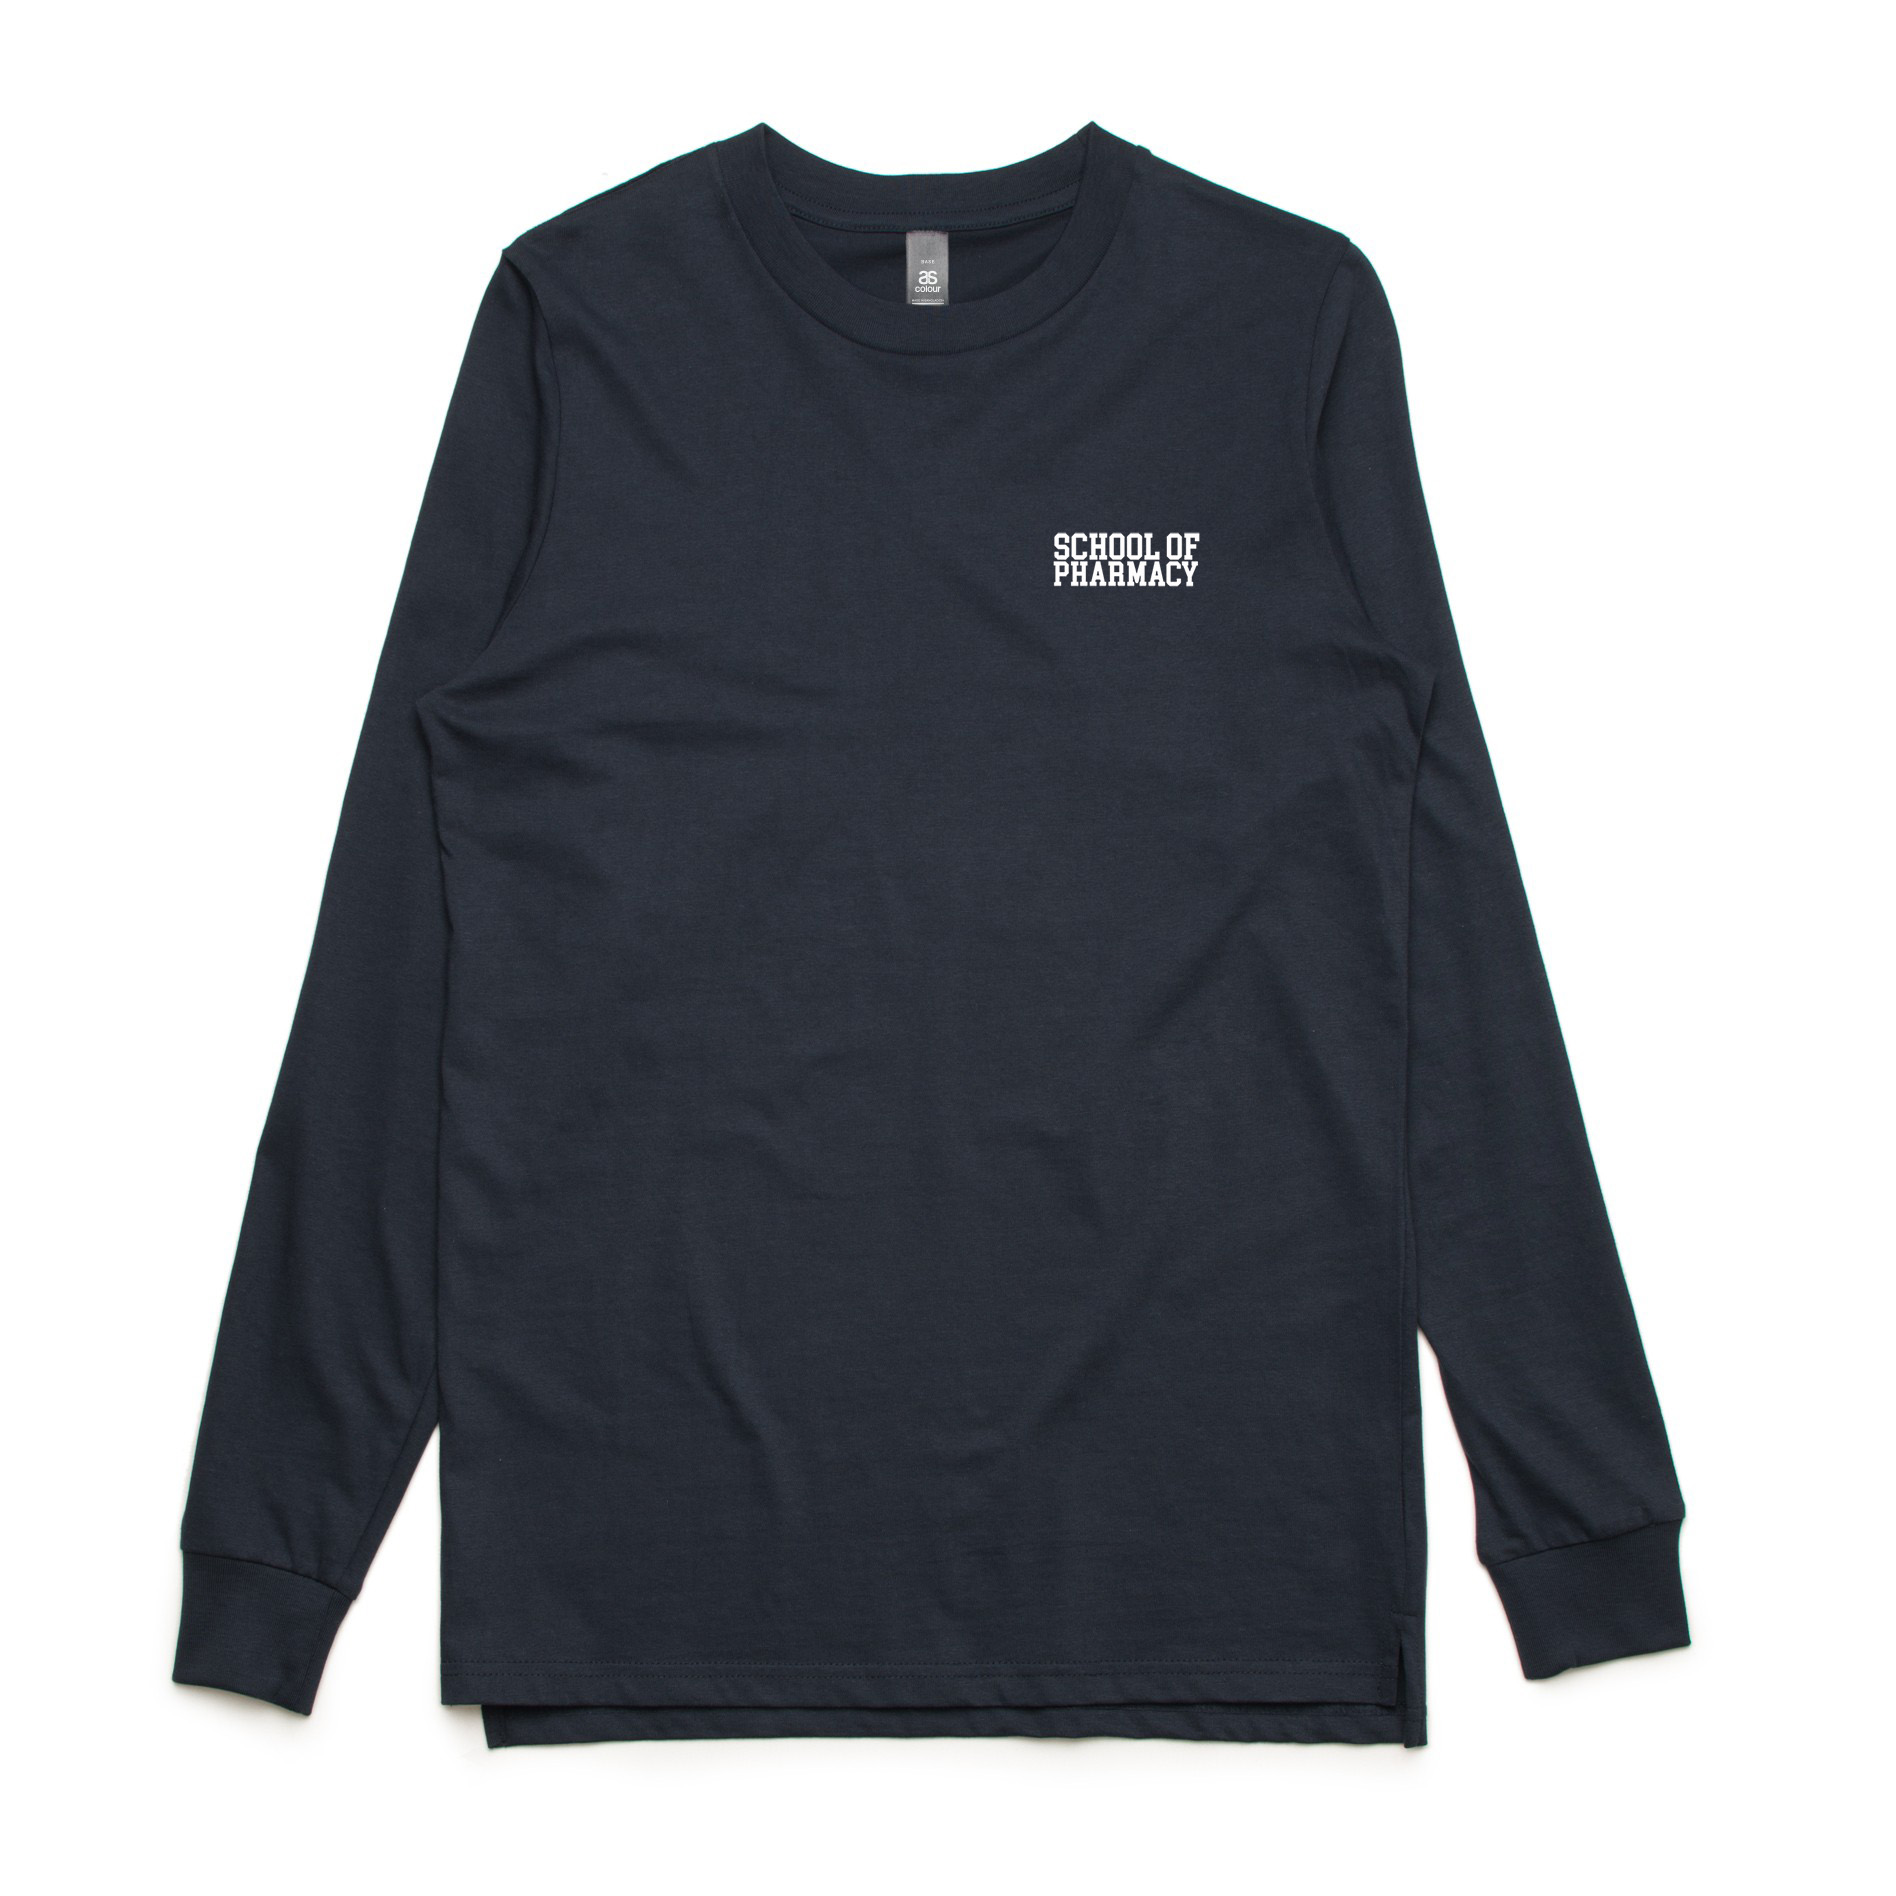 base_long_sleeve_tee_navy front.jpg